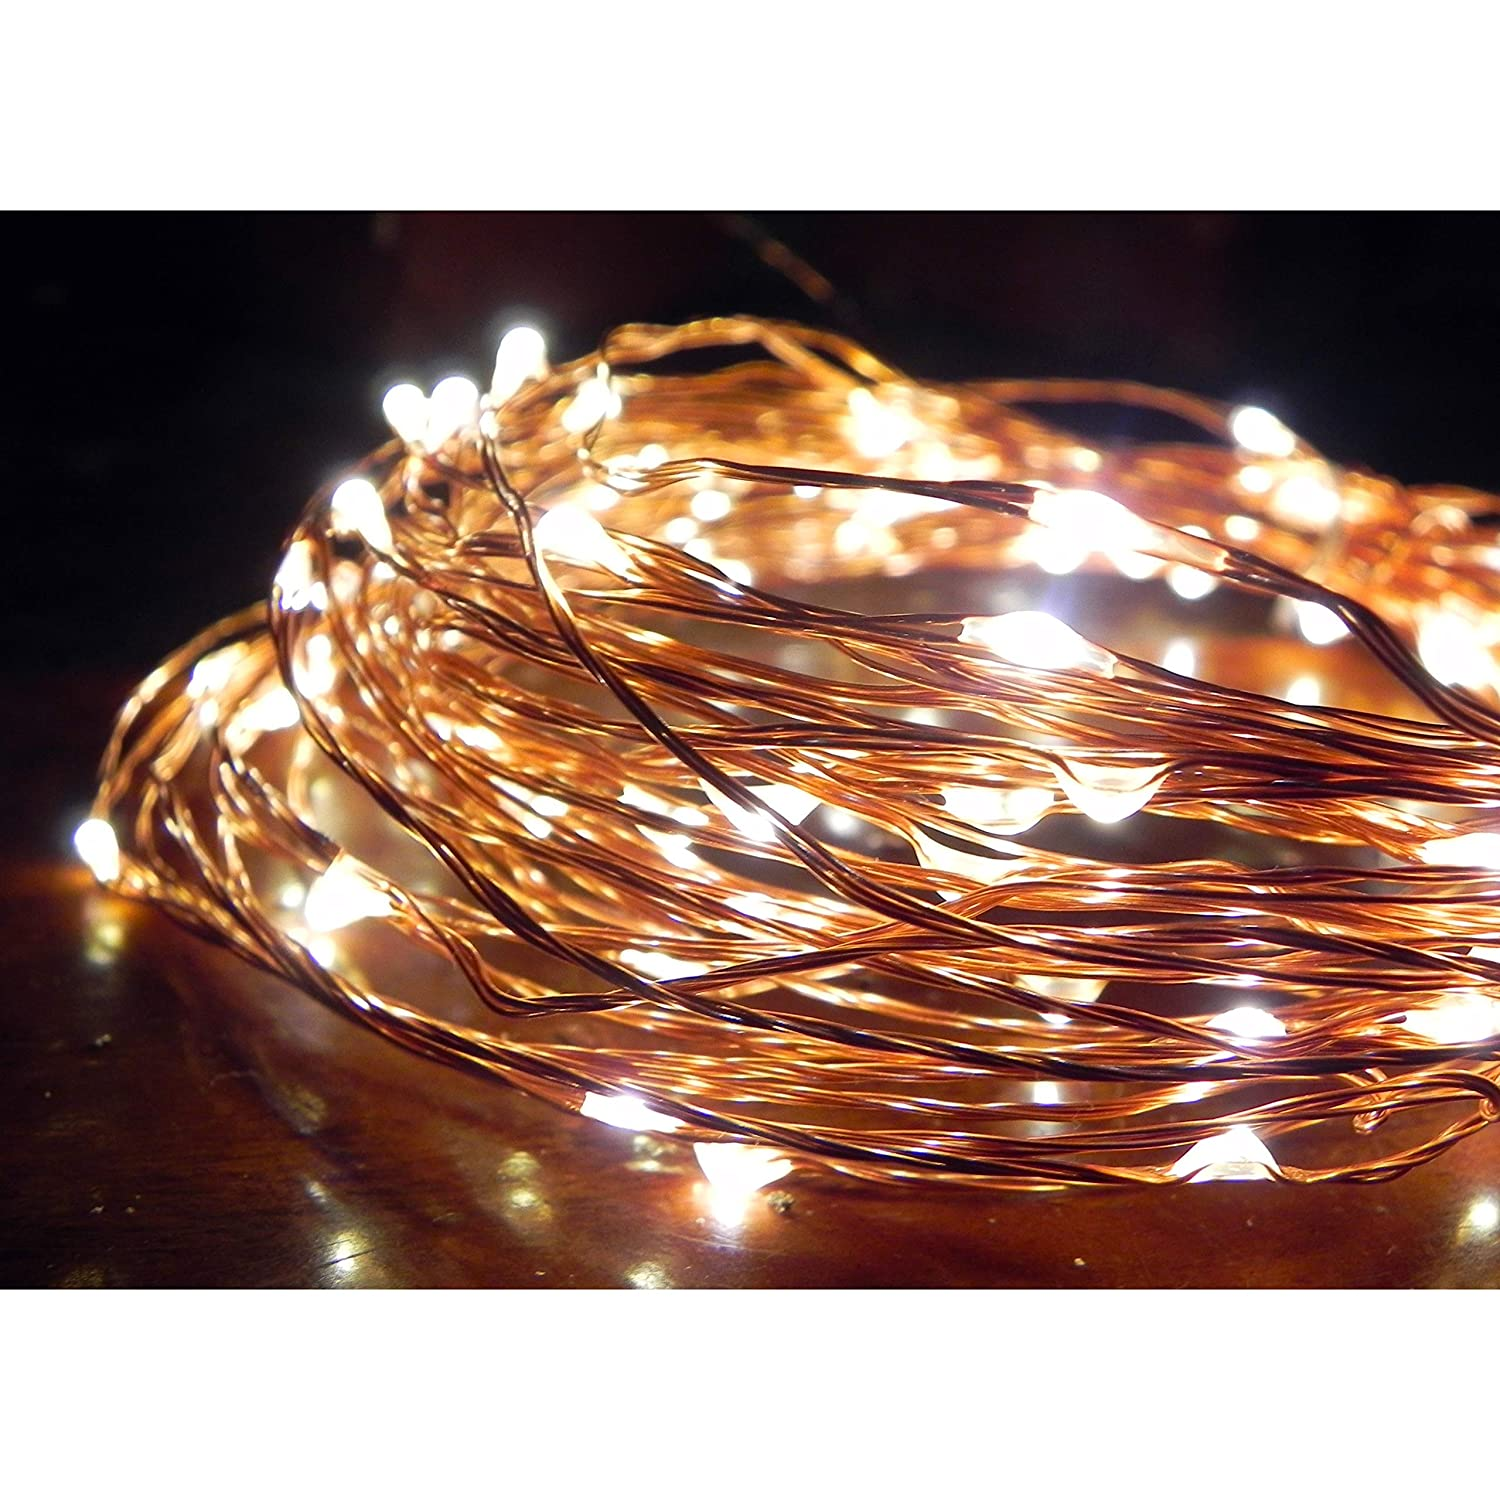 Norsis Fairy Lights - Flexible Copper Wire Starry String Lights - 100 Miniature LED Lights, Extra Long Wire - Warm White Light - Indoor/Outdoor - Interior Decor, Wedding, Craft and DIY